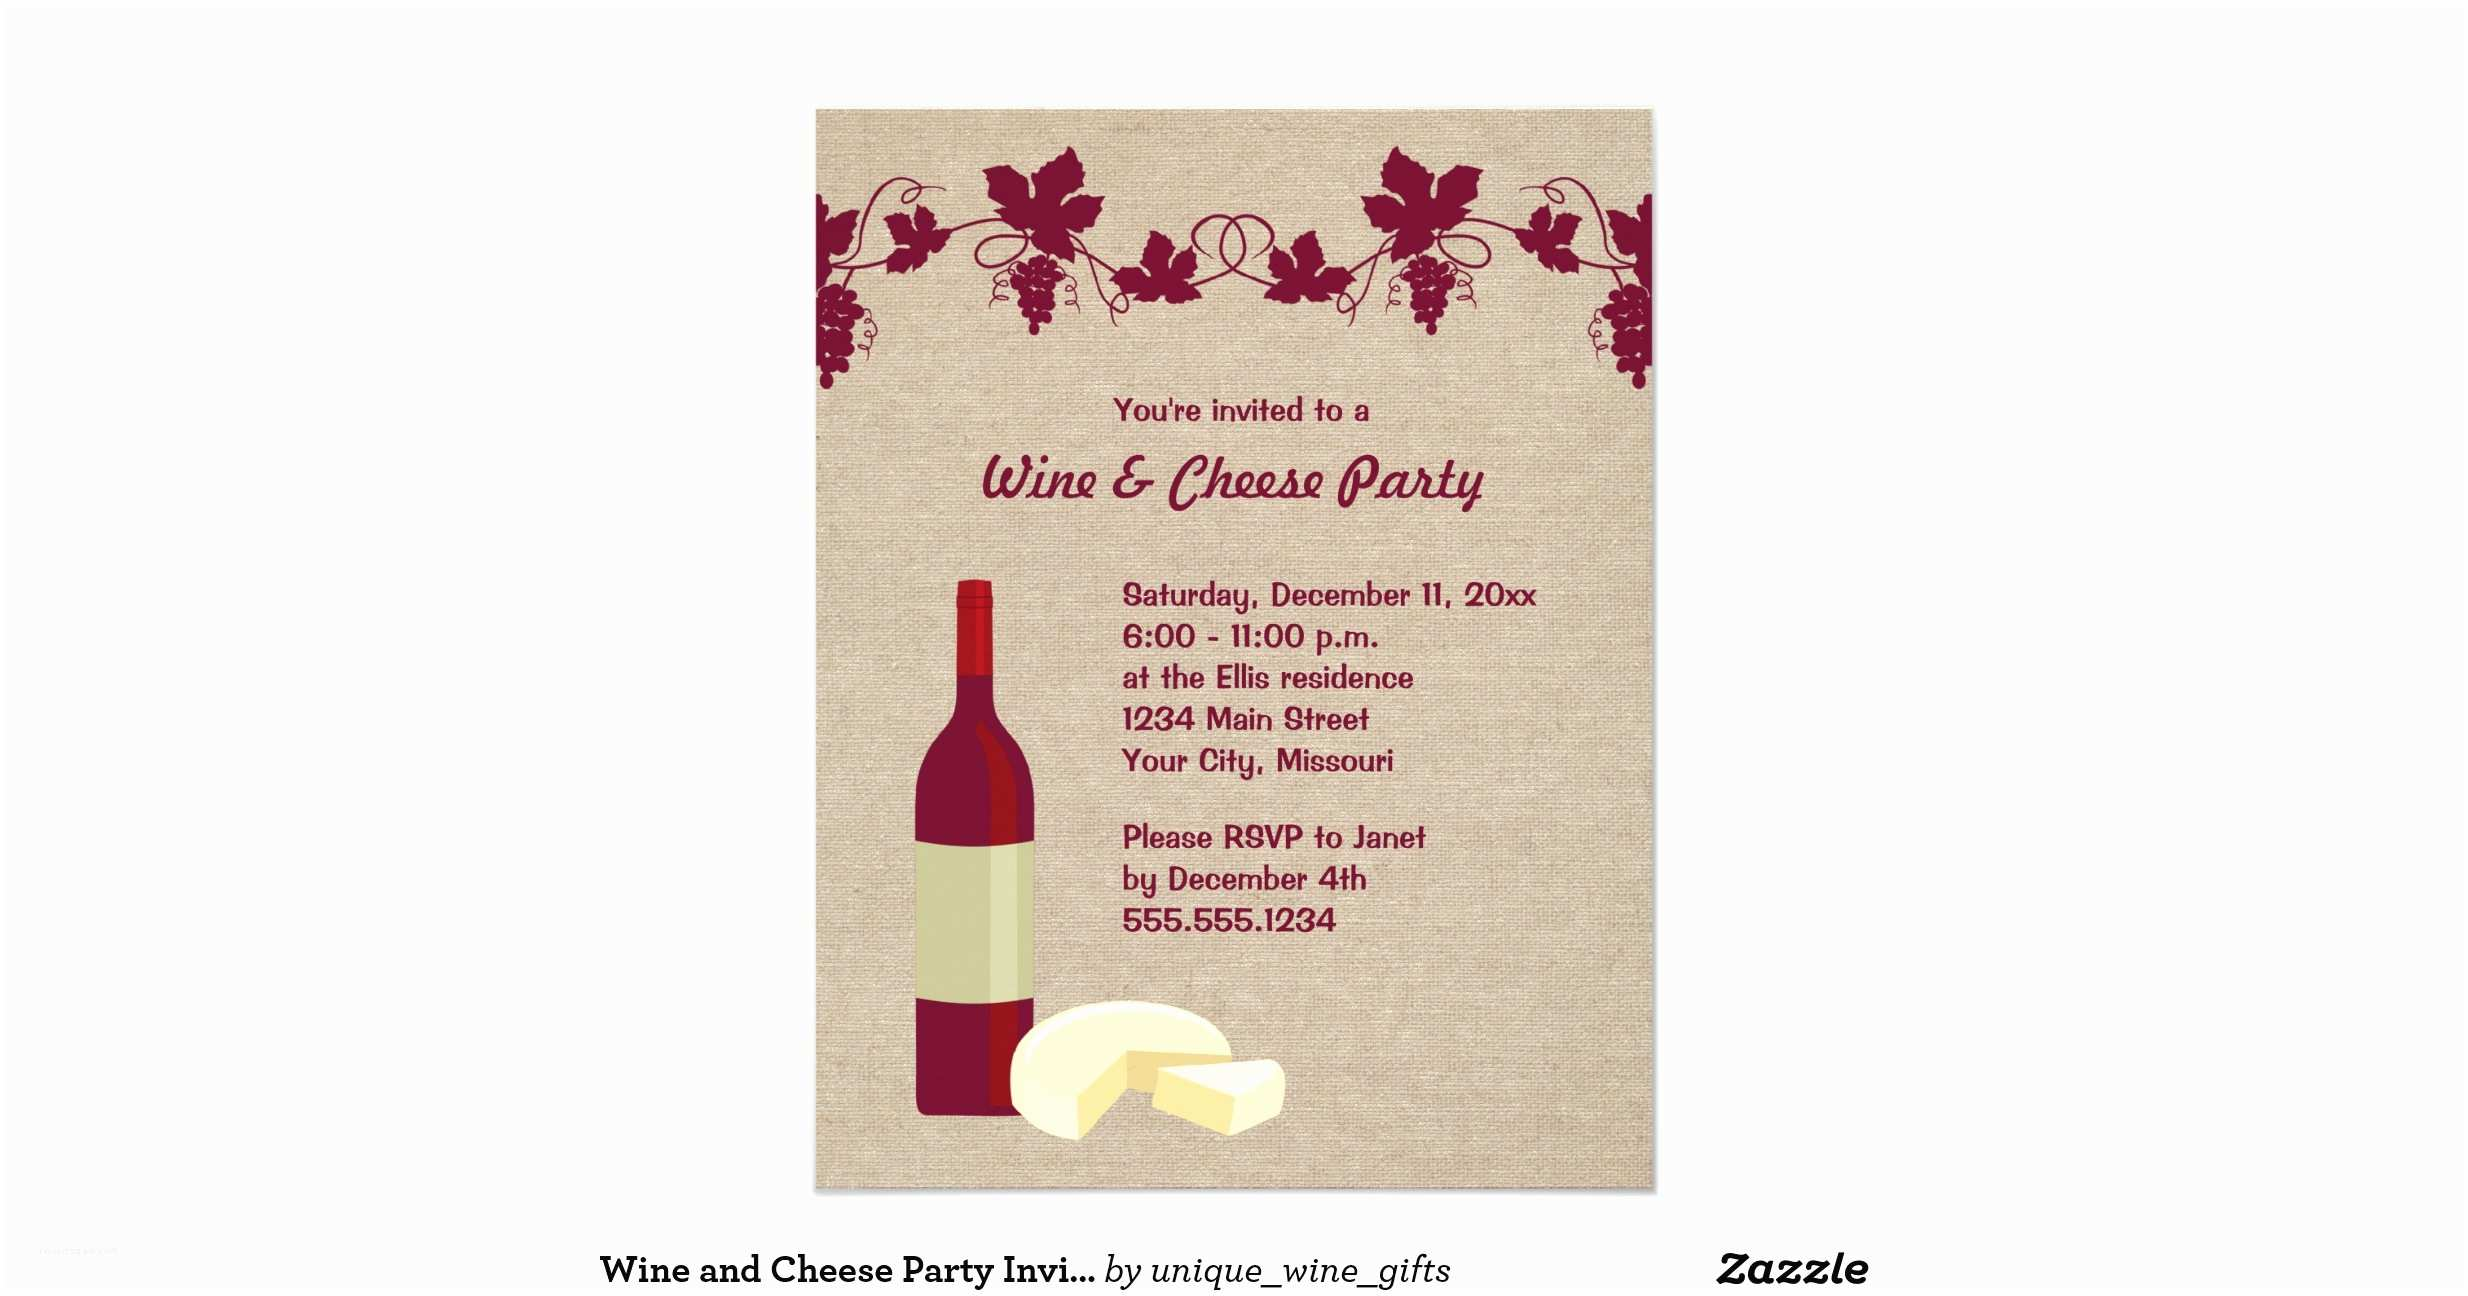 Wine and Cheese Party Invitations Wine and Cheese Party Invitations